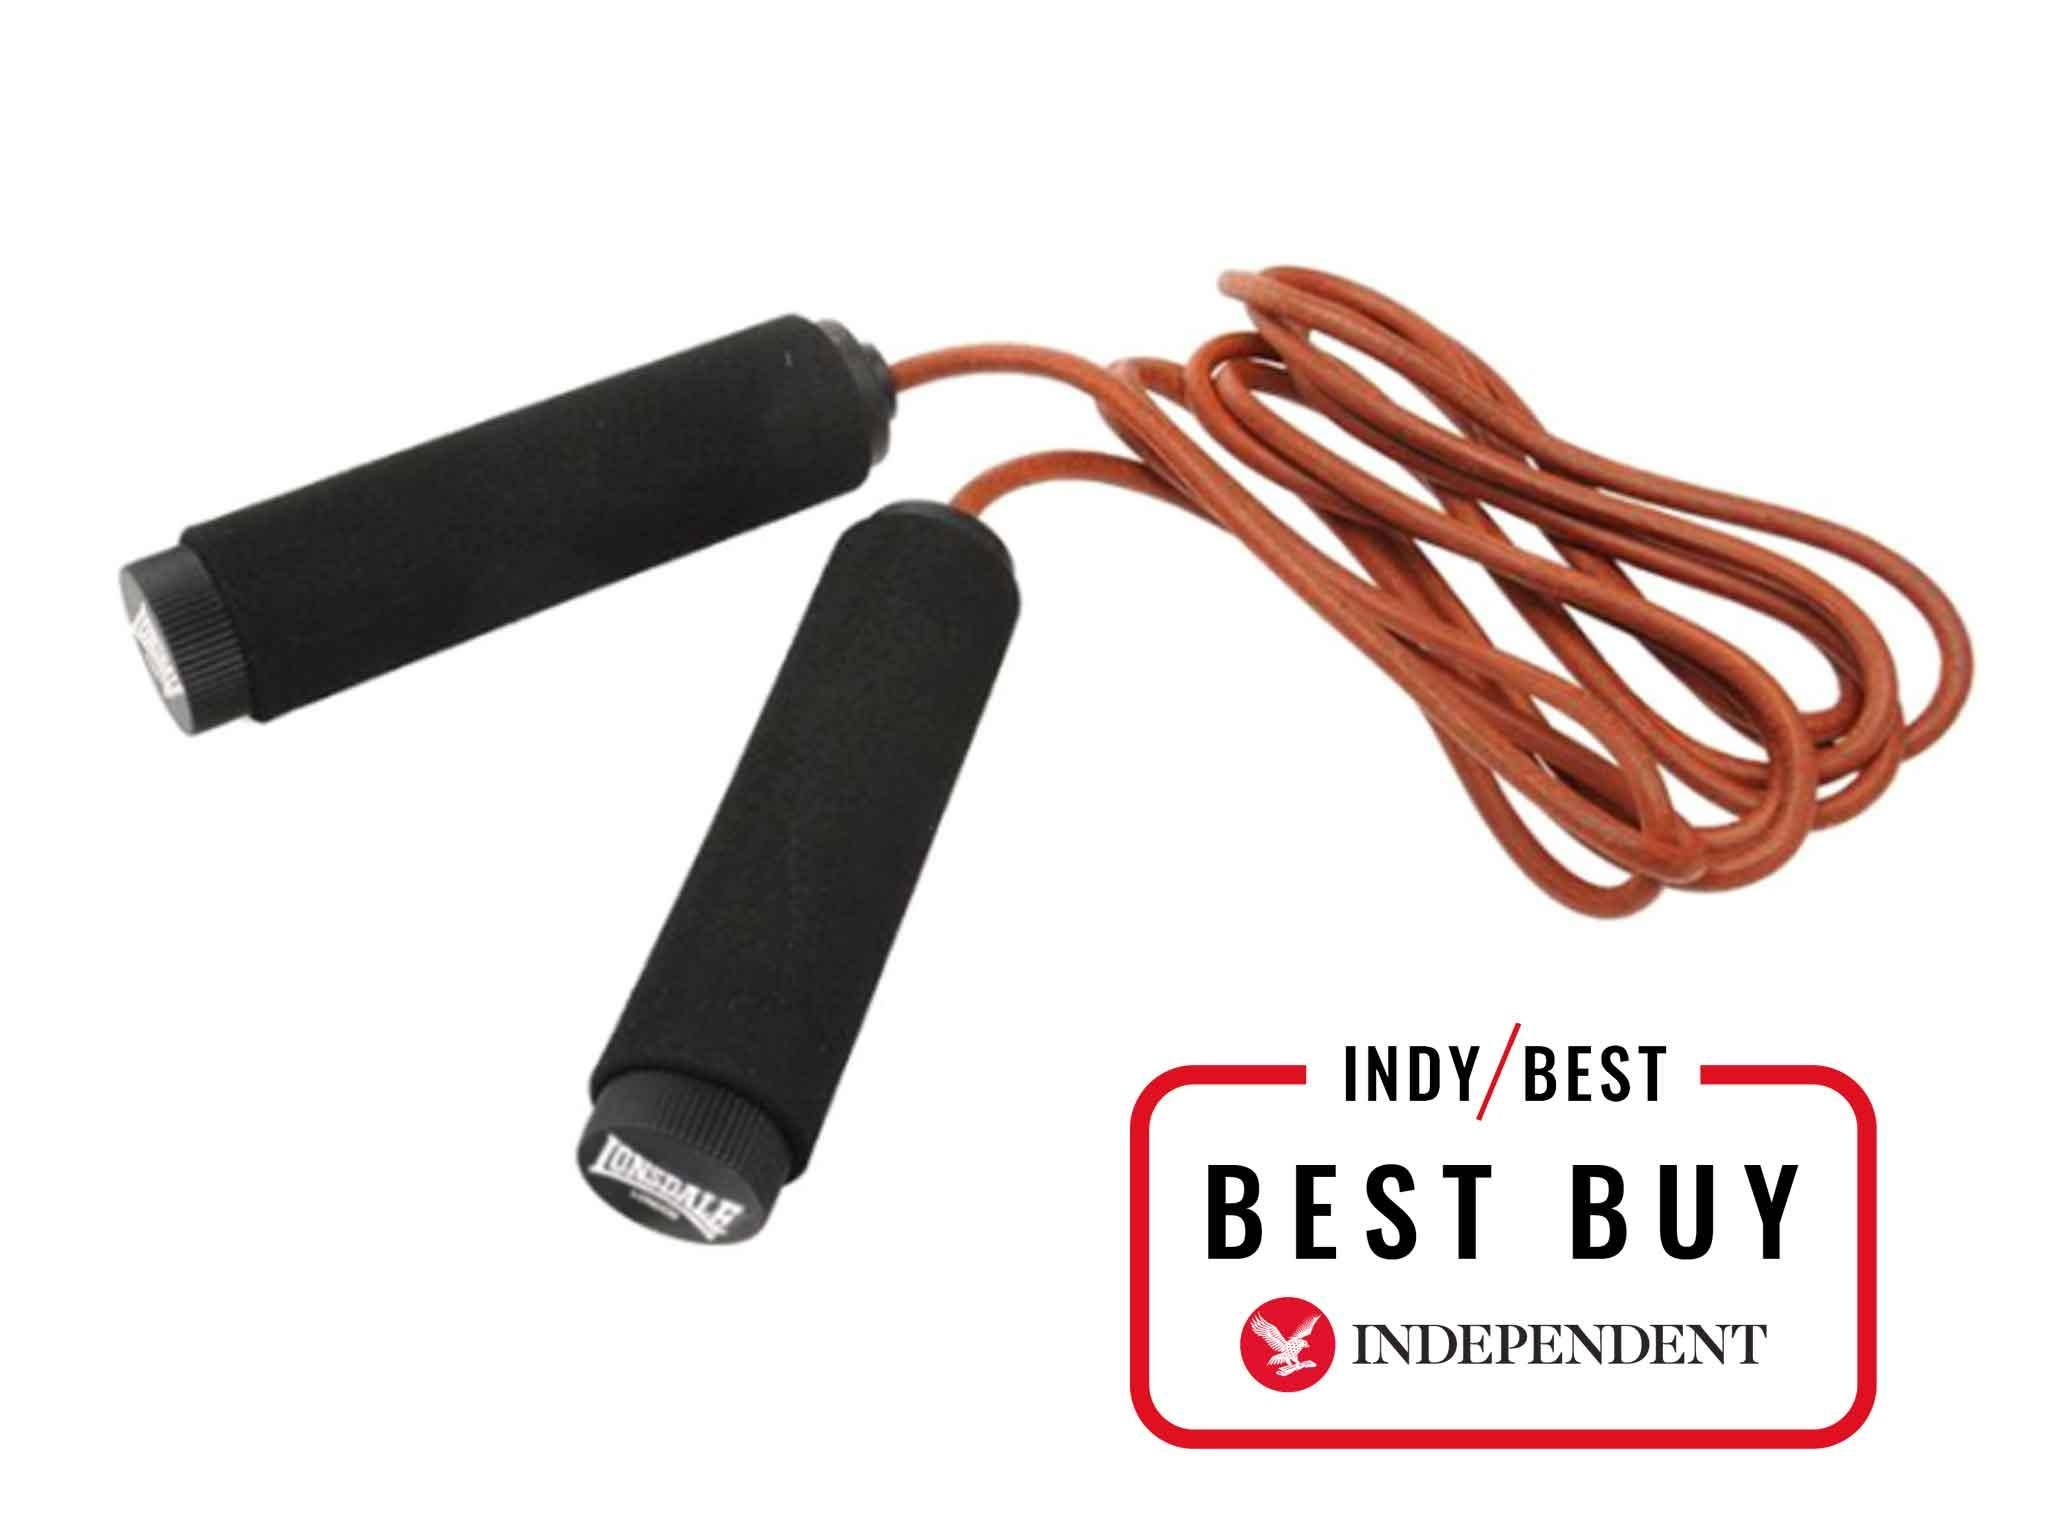 8 Best Skipping Ropes The Independent Wiring Garden Lights Uk Read More